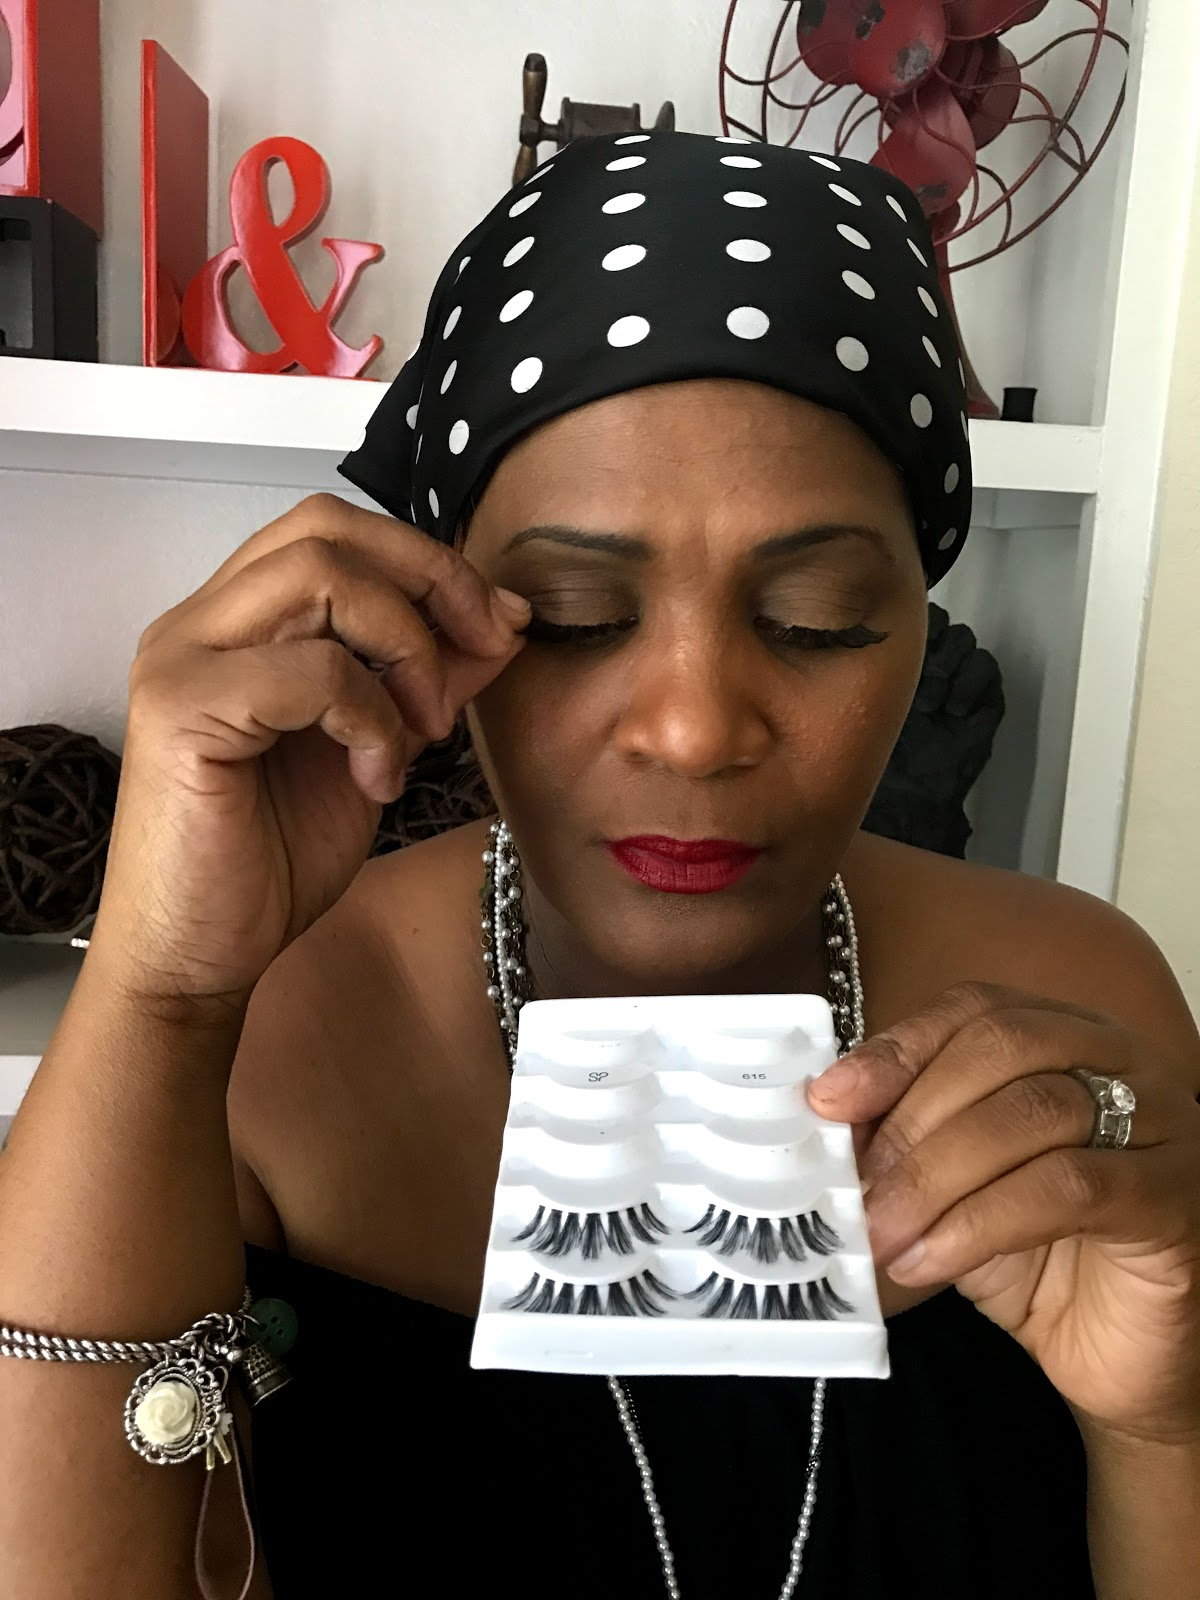 Image: Woman removing eyelashes before removing makeup. Forty-something blogger